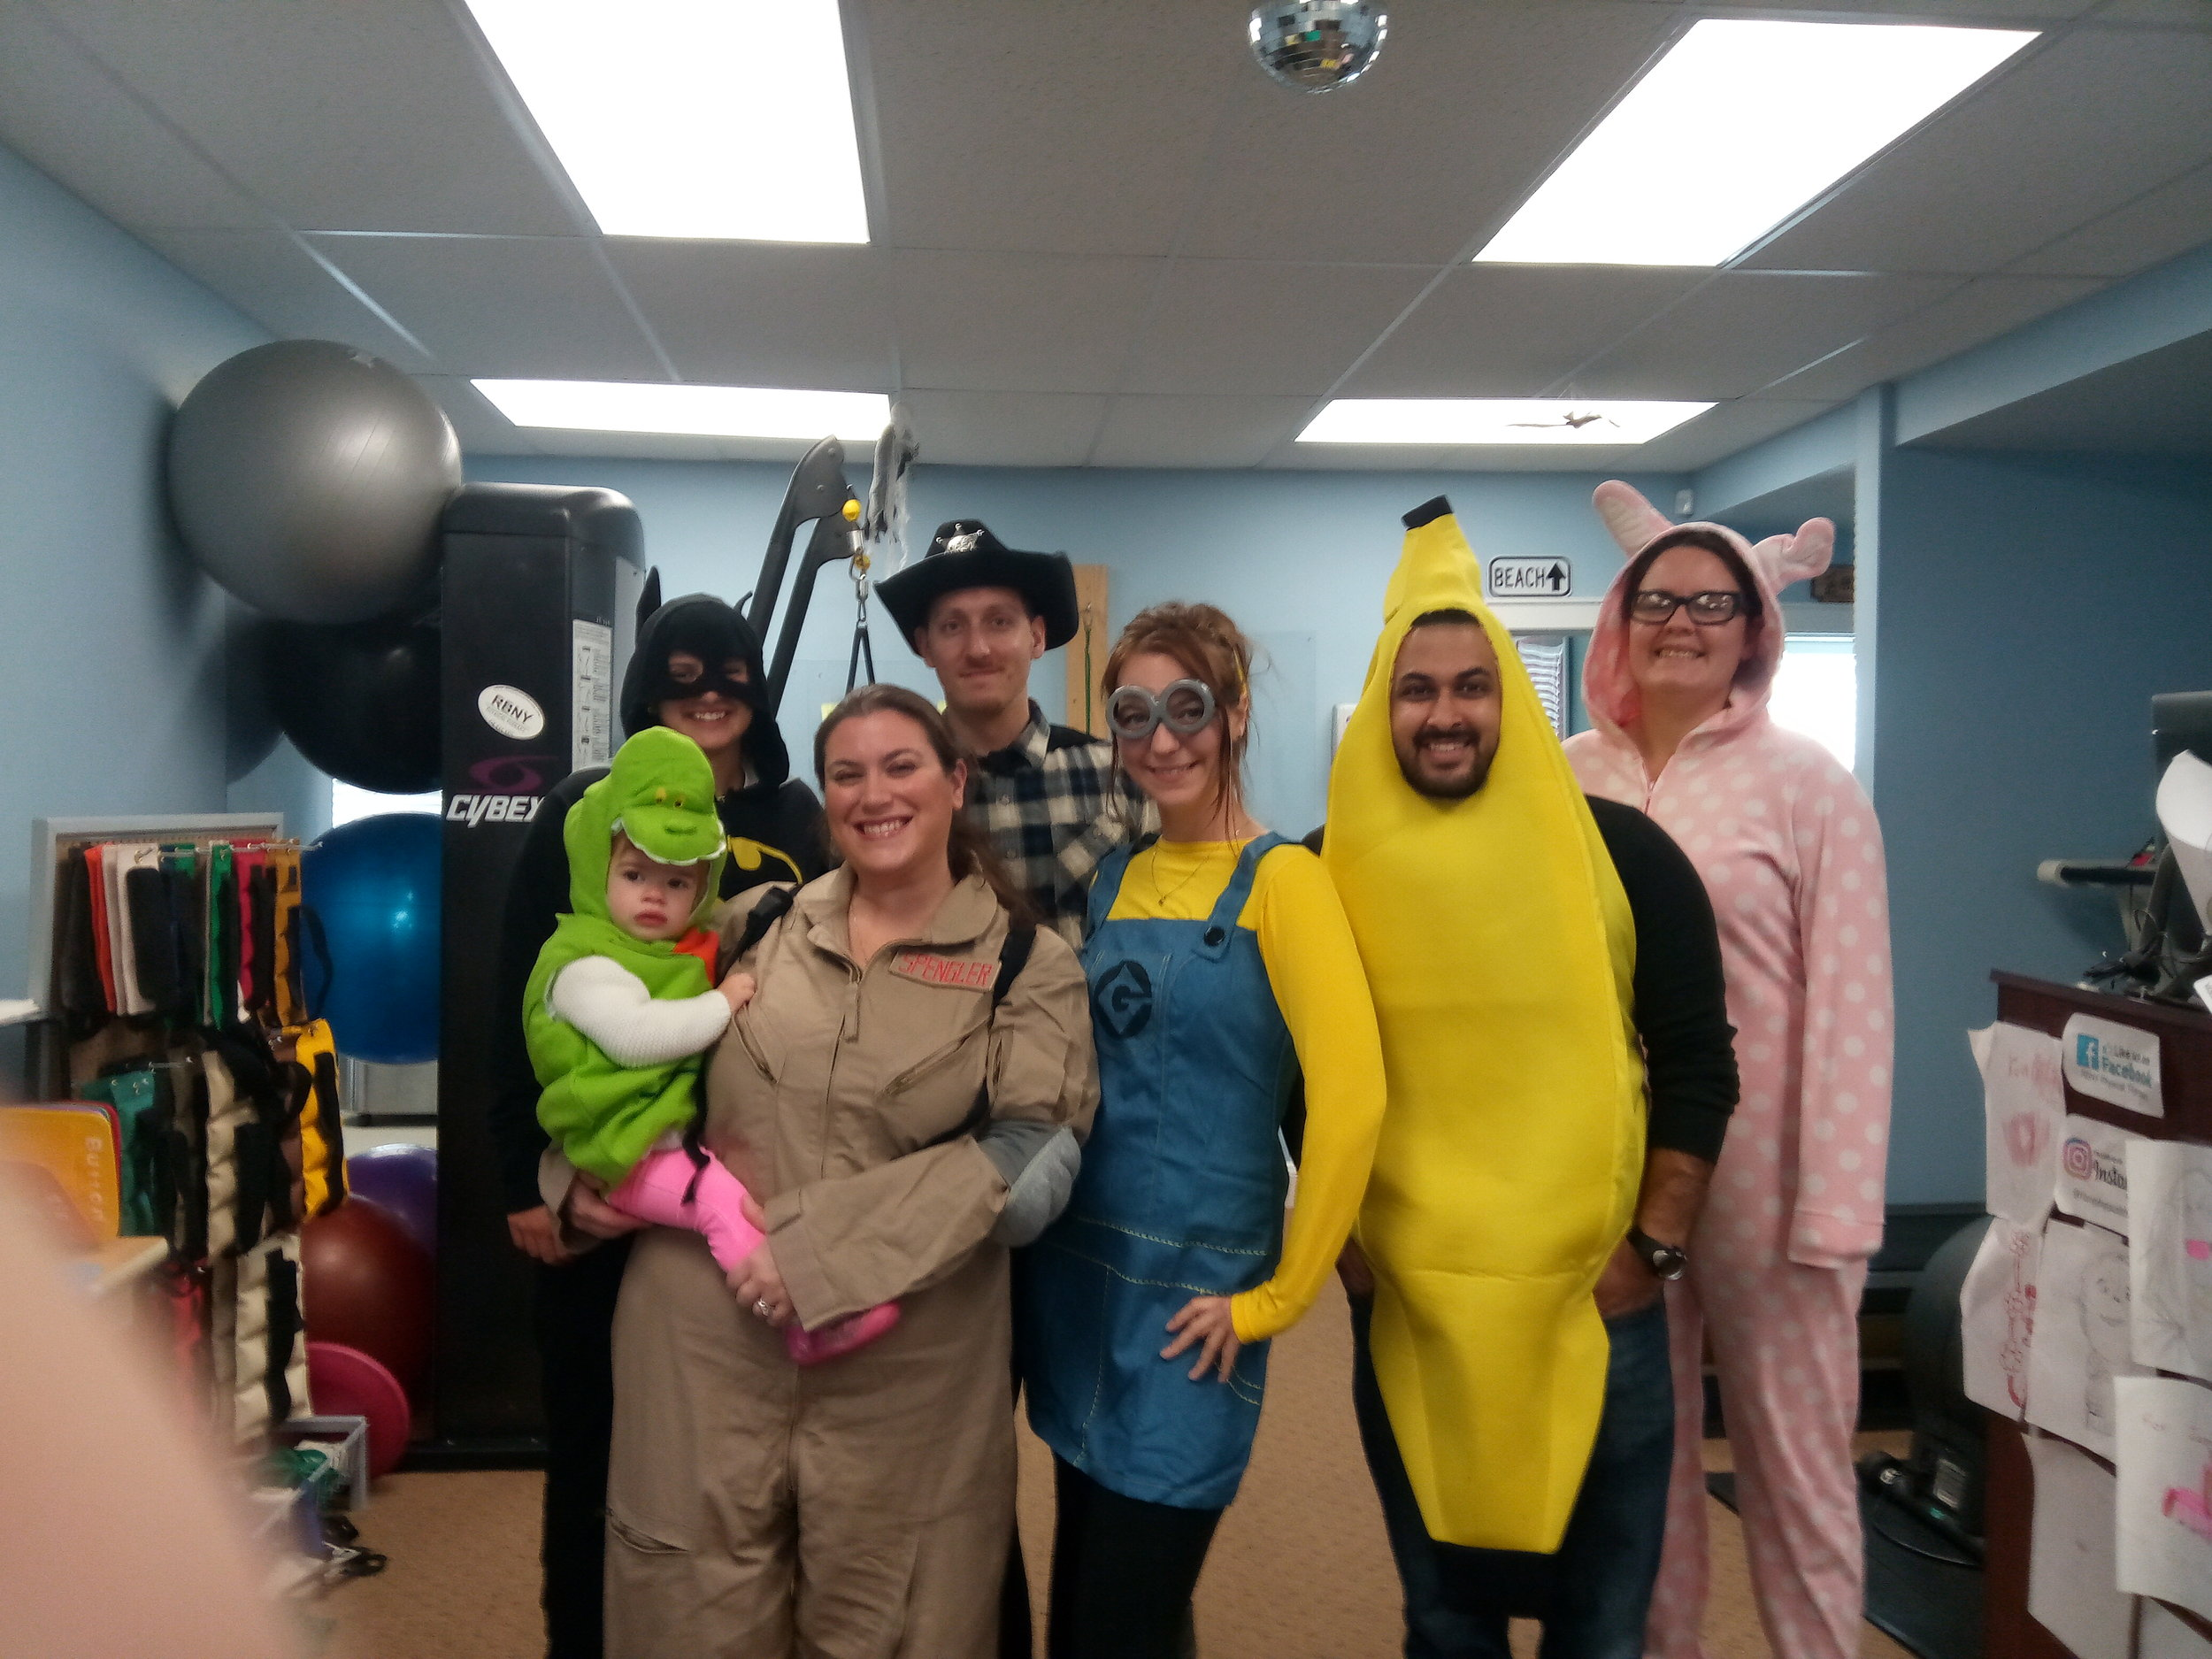 And here is some of our staff on Halloween 2017!